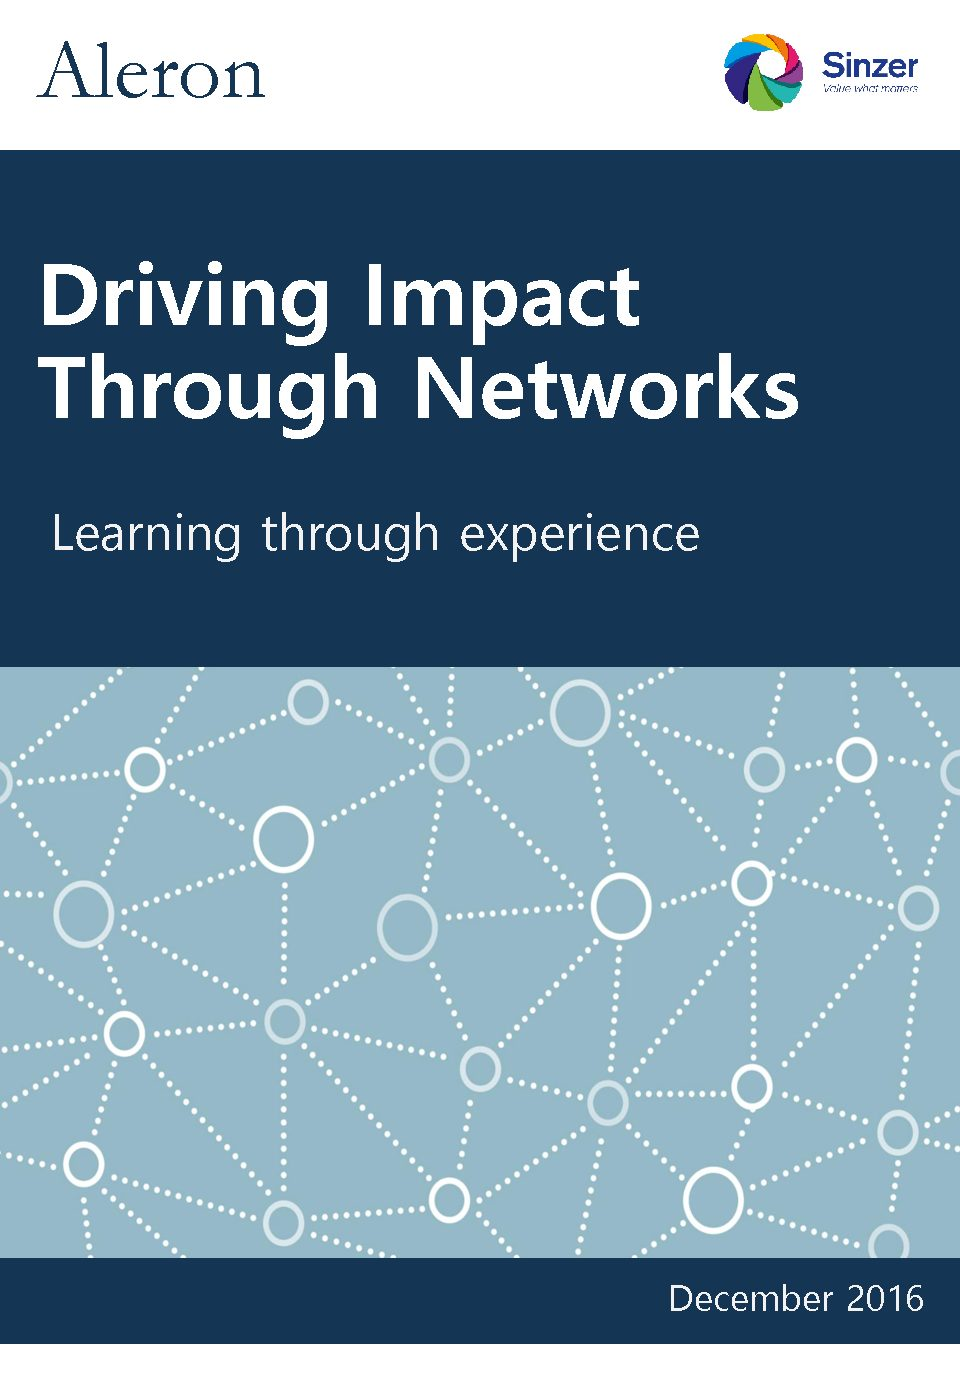 Driving Impact Through Networks – Briefing Paper